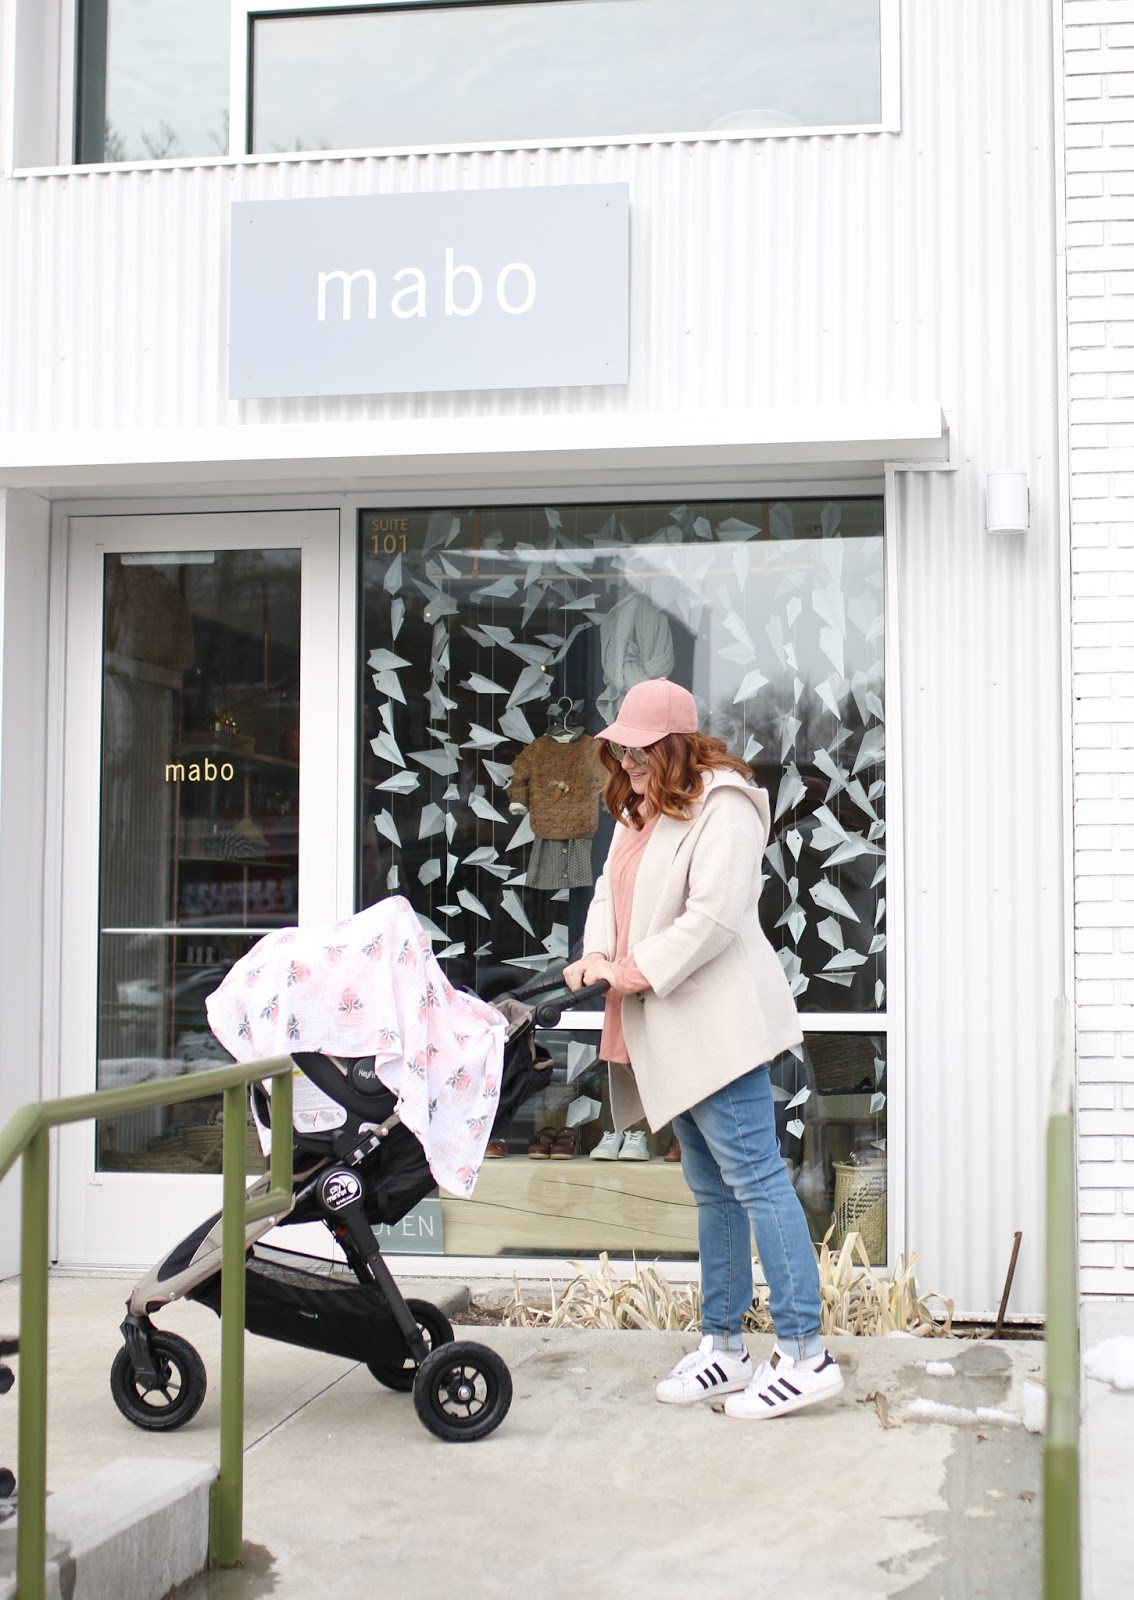 city mini baby jogger, mom life, mabo kids in slc